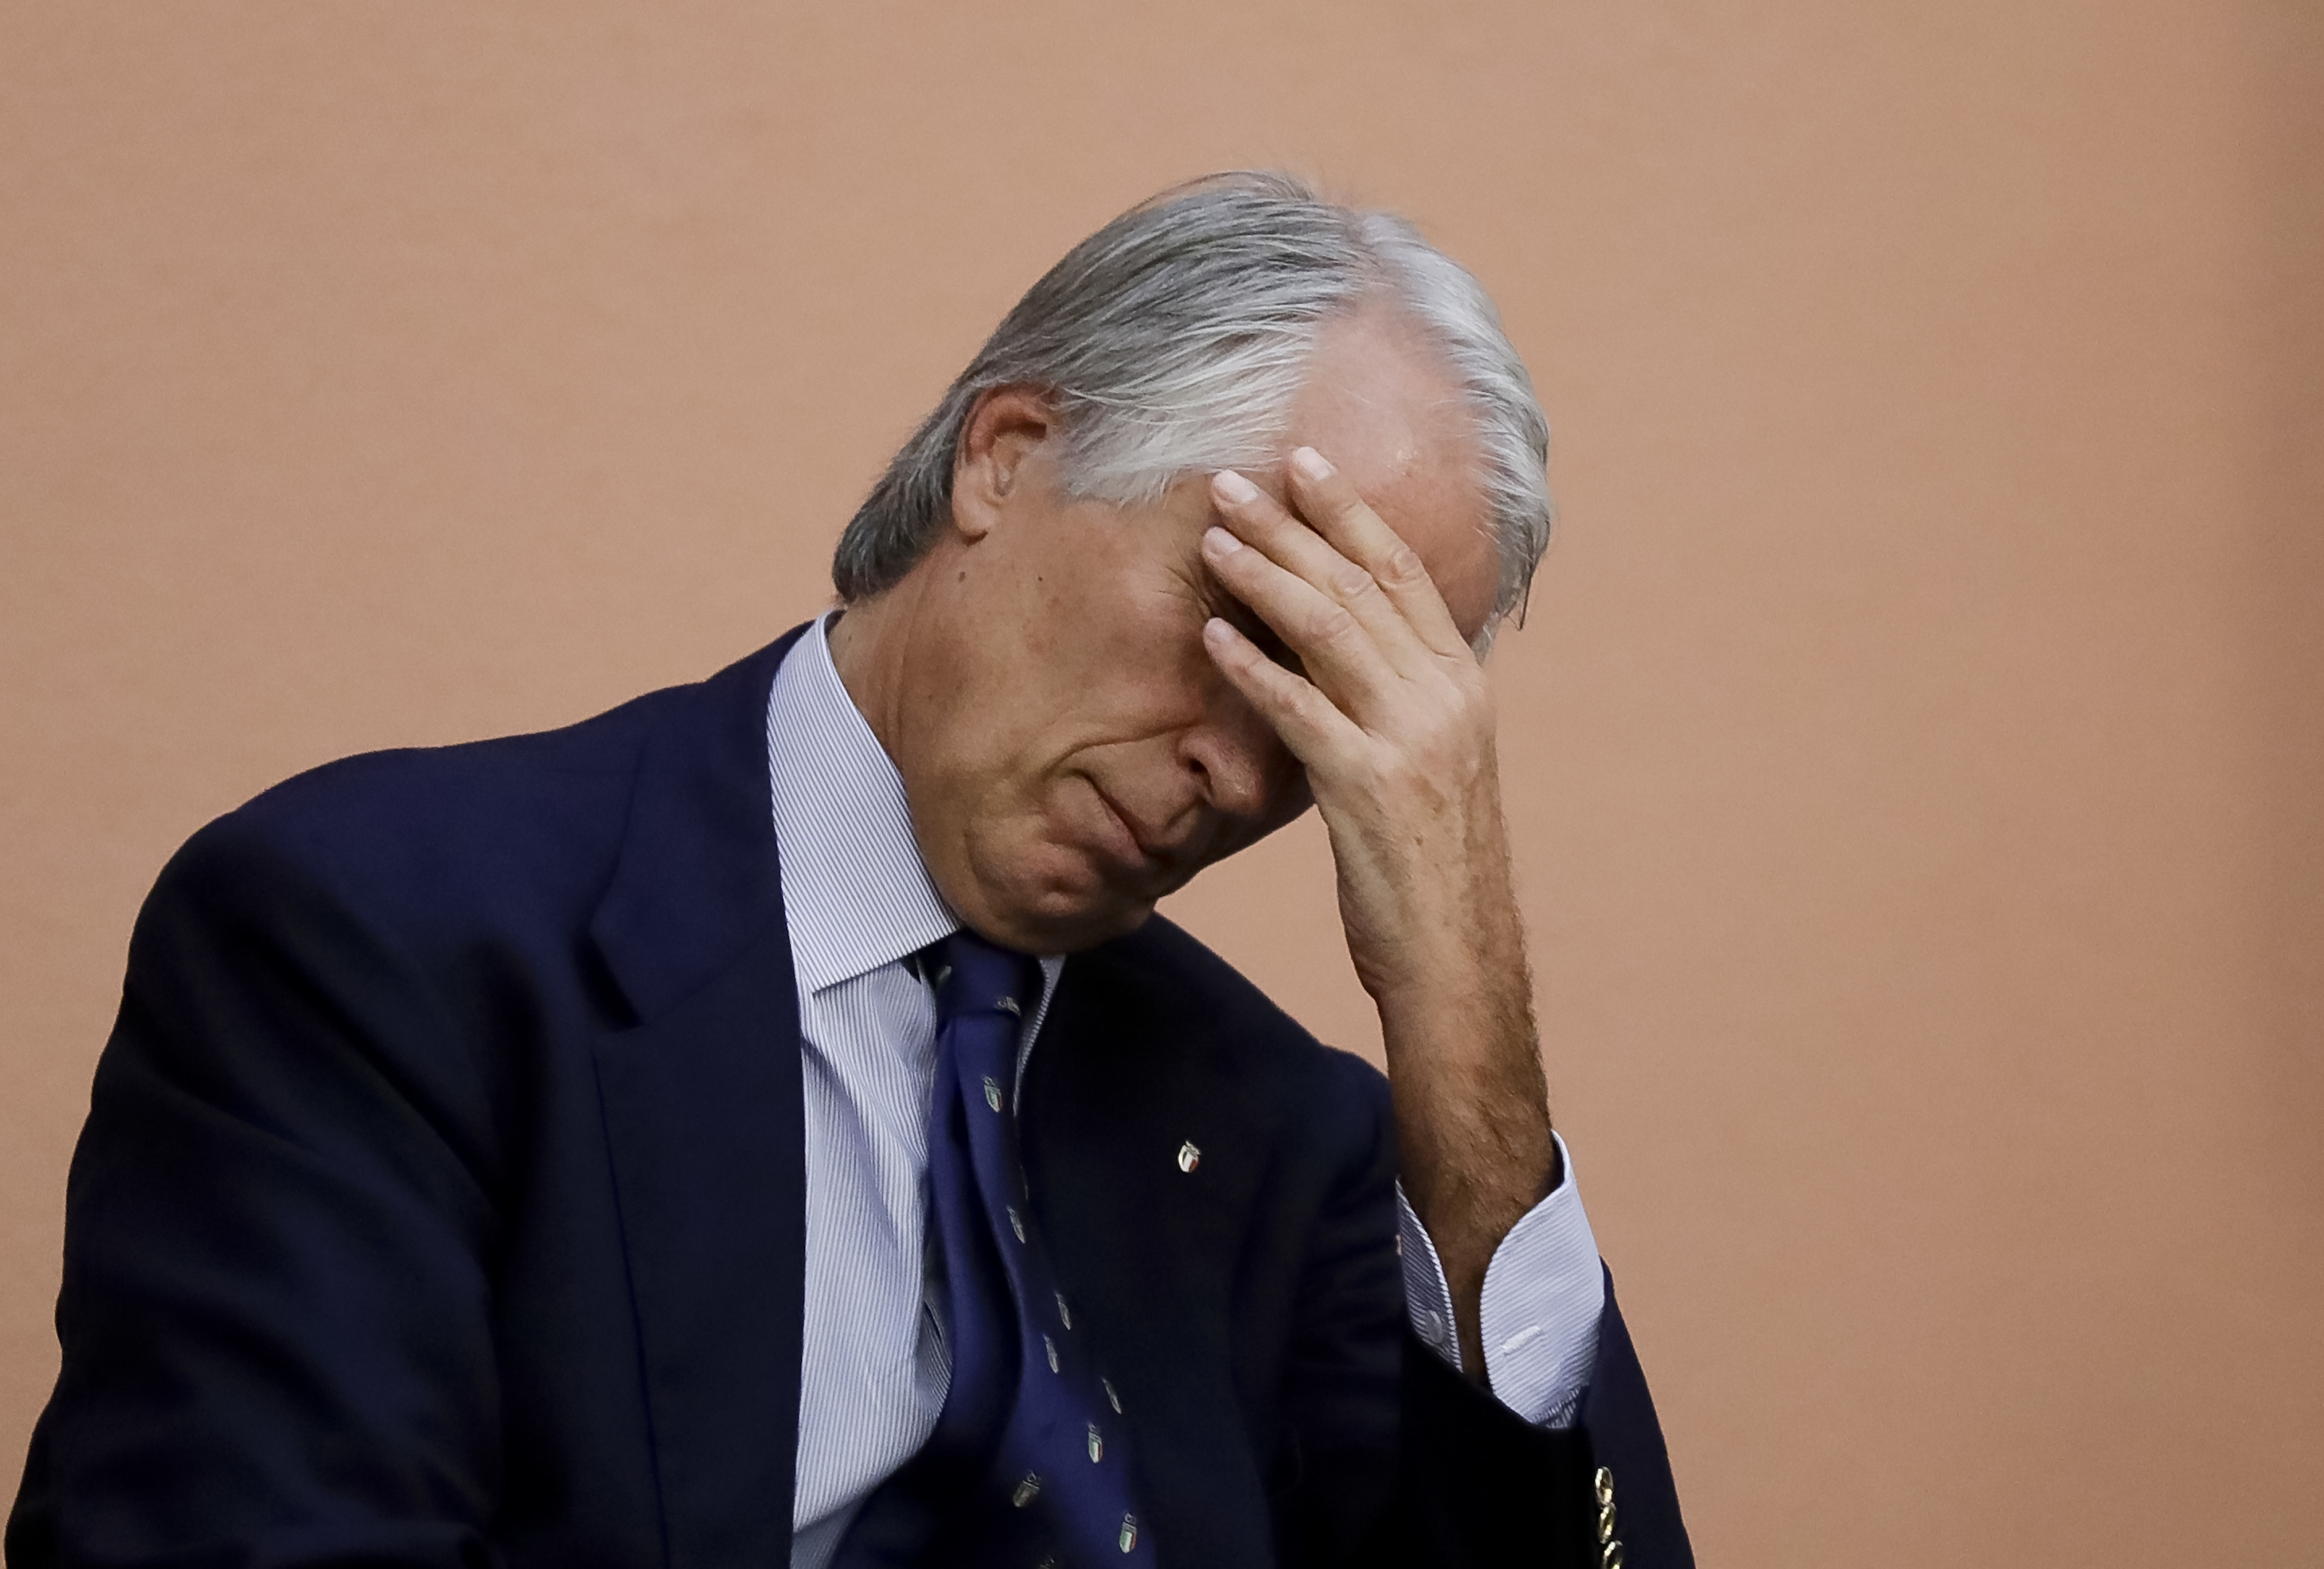 Italian Olympic Committee President Giovanni Malago' touches his forehead during a press conference in Rome,  Tuesday, Oct. 11, 2016. The Italian Olympic Committee is suspending Rome's bid for the 2024 Games for the time being, while leaving open the poss